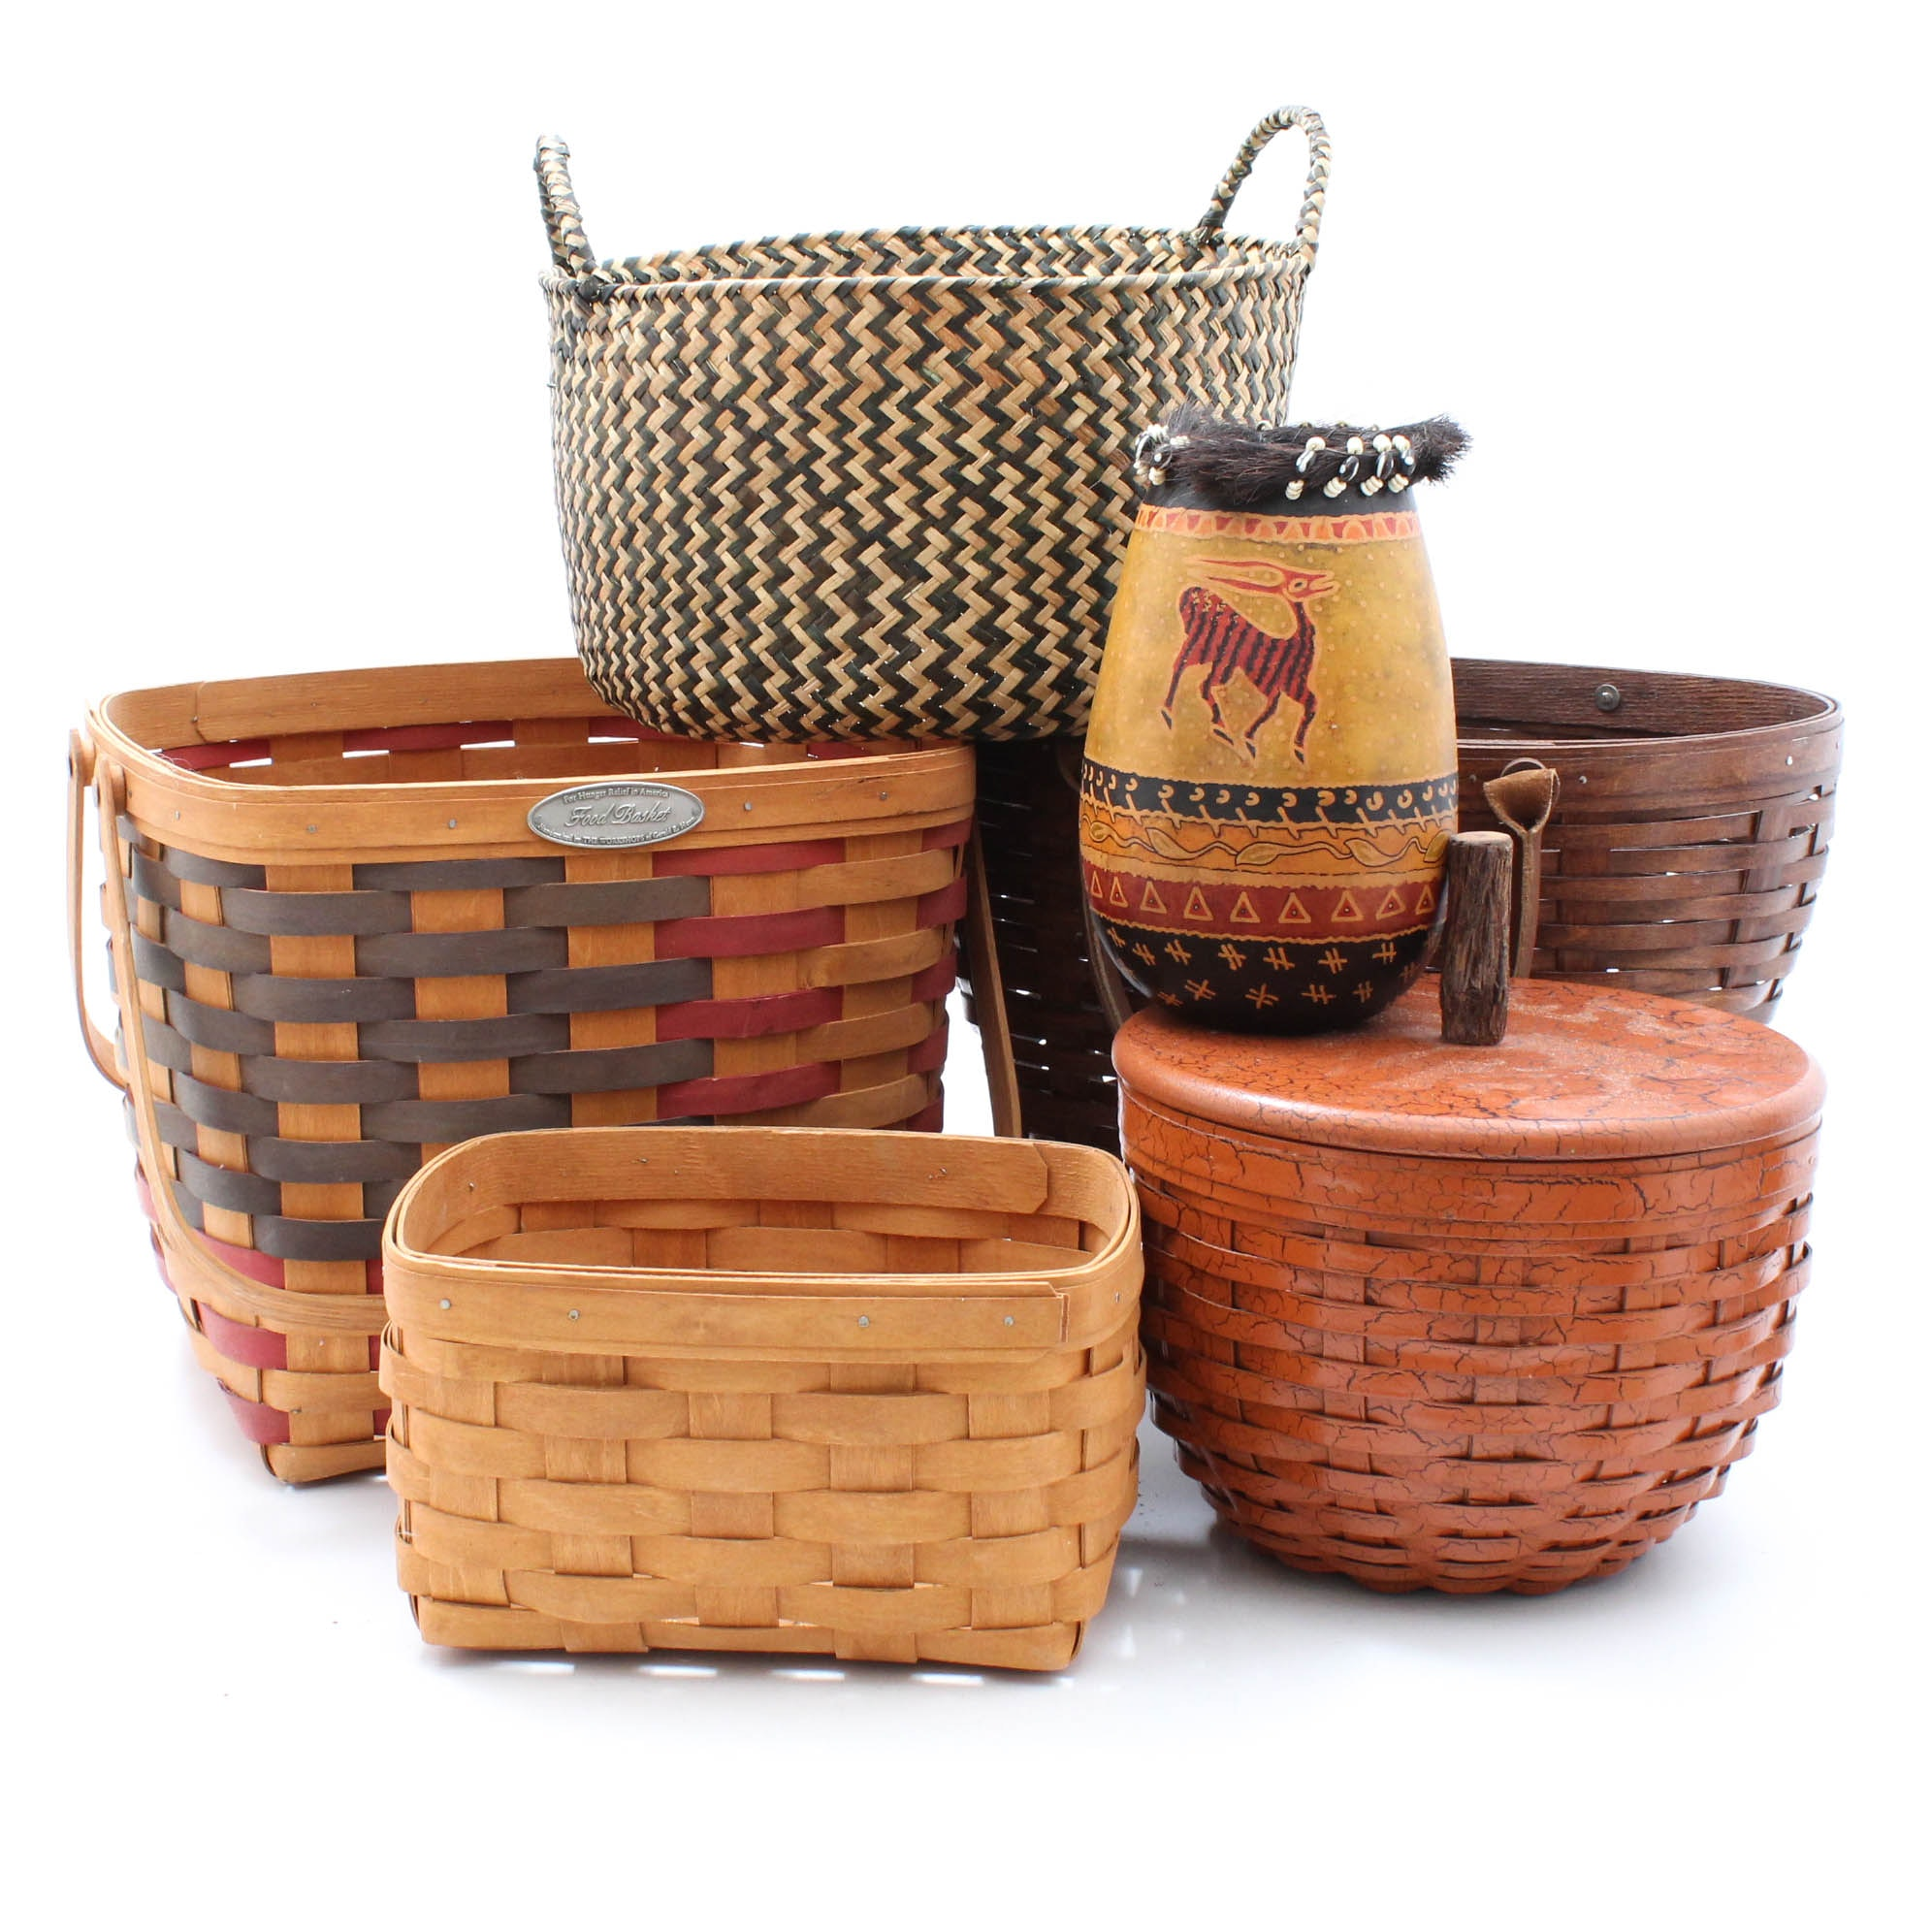 Decorative Baskets and Hand Painted Gourd